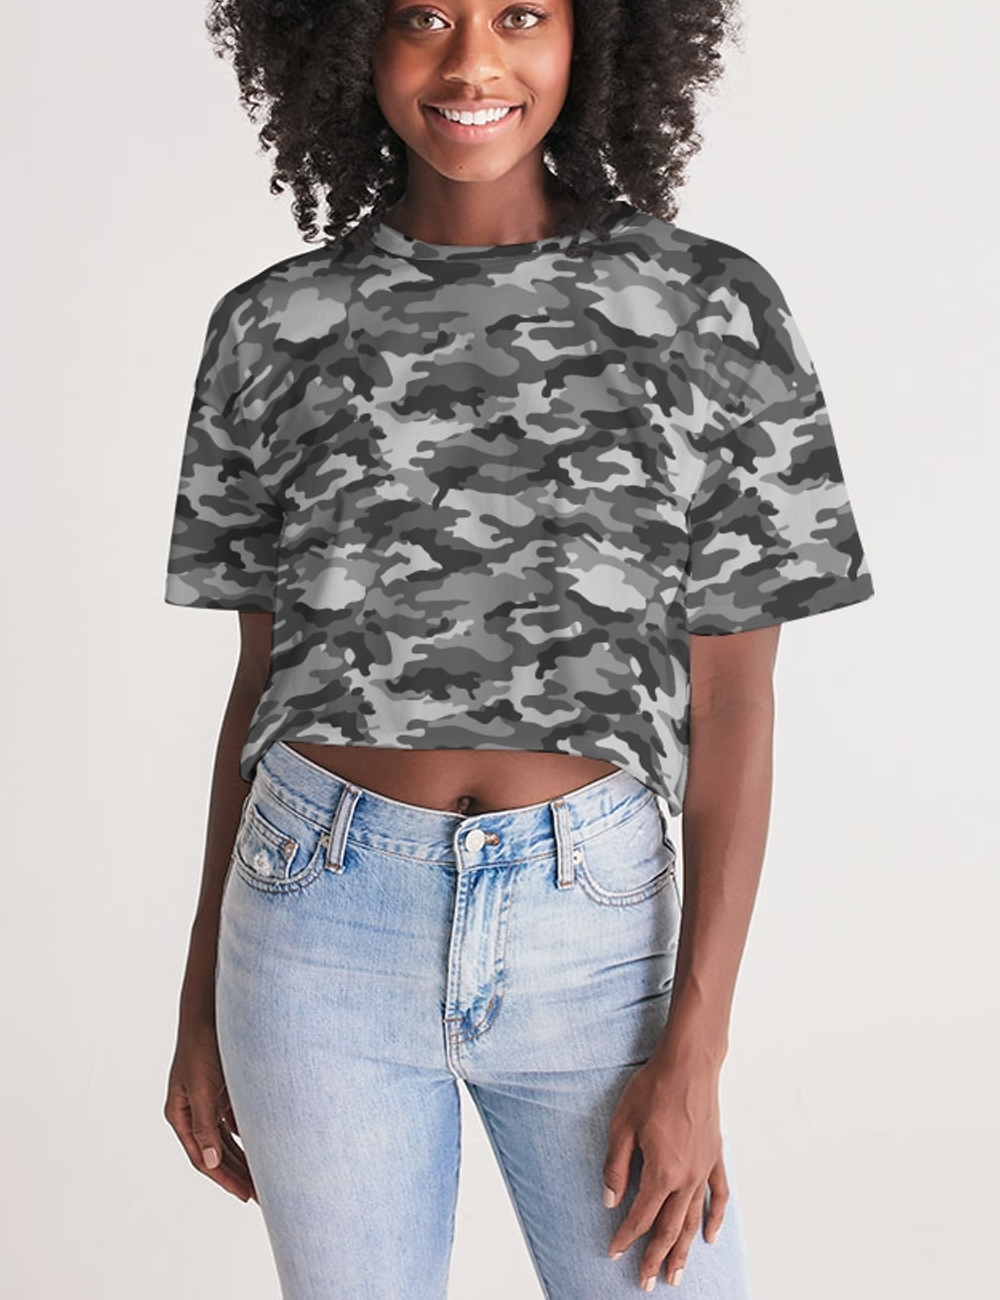 Gray Jungle Military Camouflage Print | Women's Oversized Crop Top T-Shirt